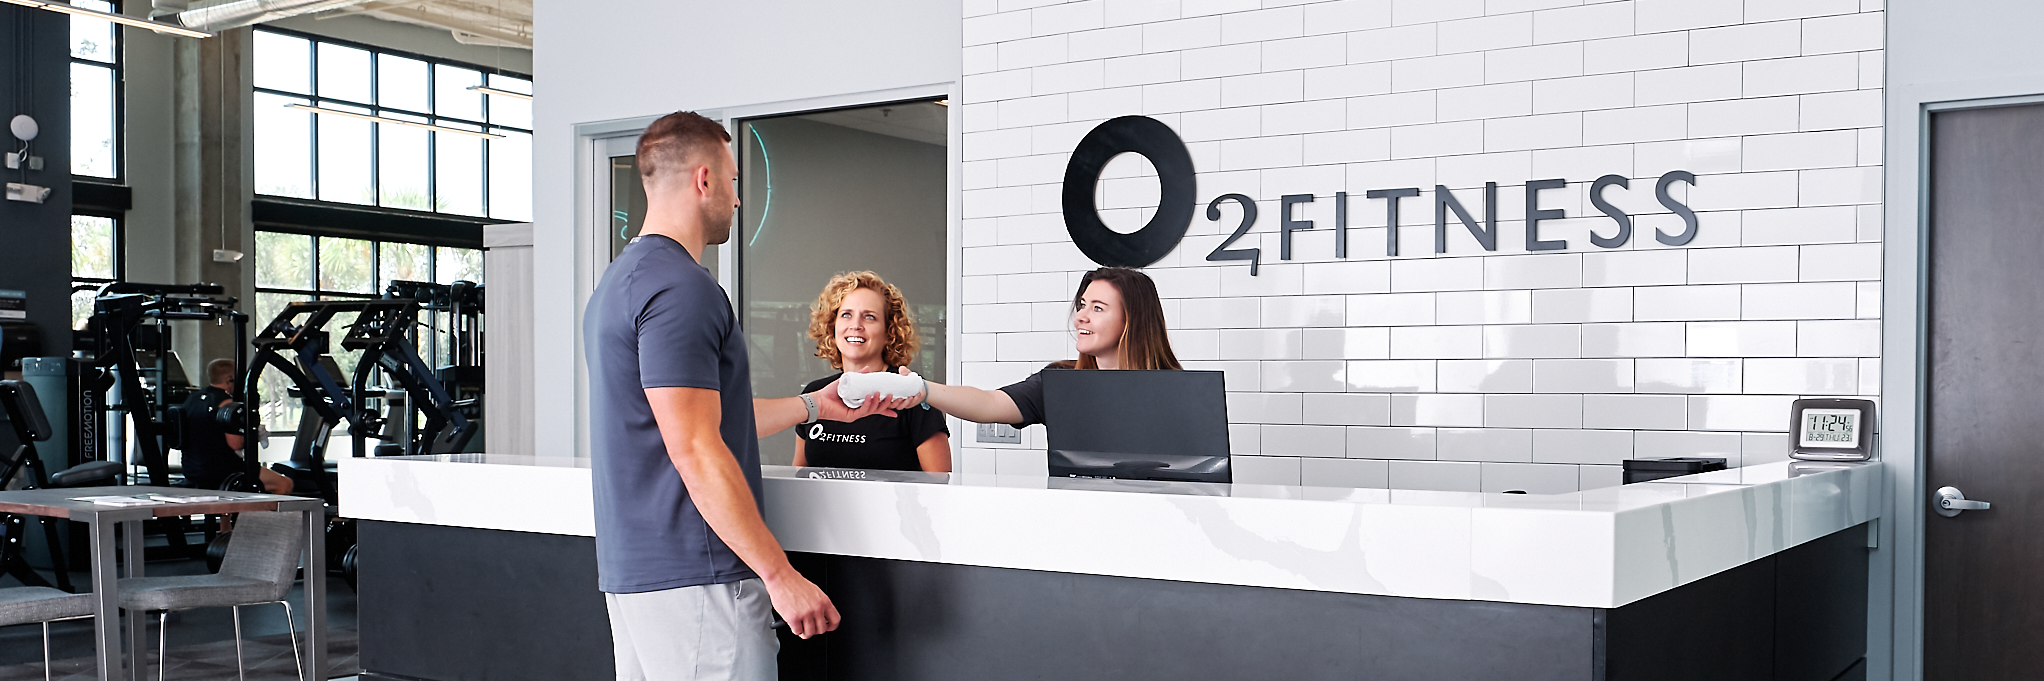 O2 Fitness Club Entrance